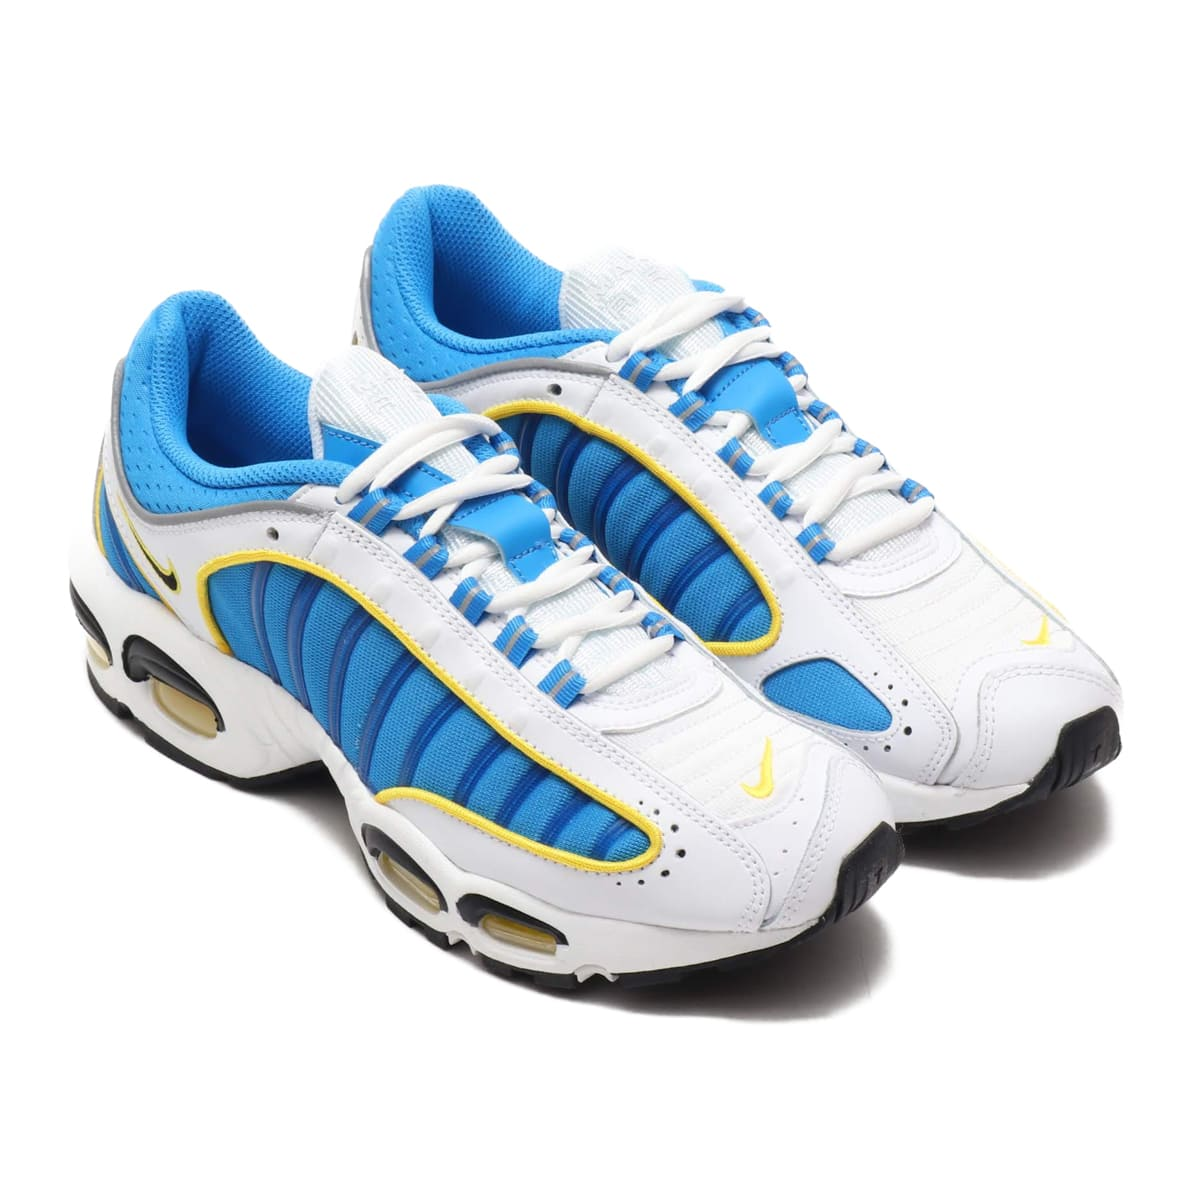 NIKE AIR MAX TAILWIND IV WHITE/LT PHOTO BLUE-SPEED YELLOW-WHITE 20SP-S_photo_large